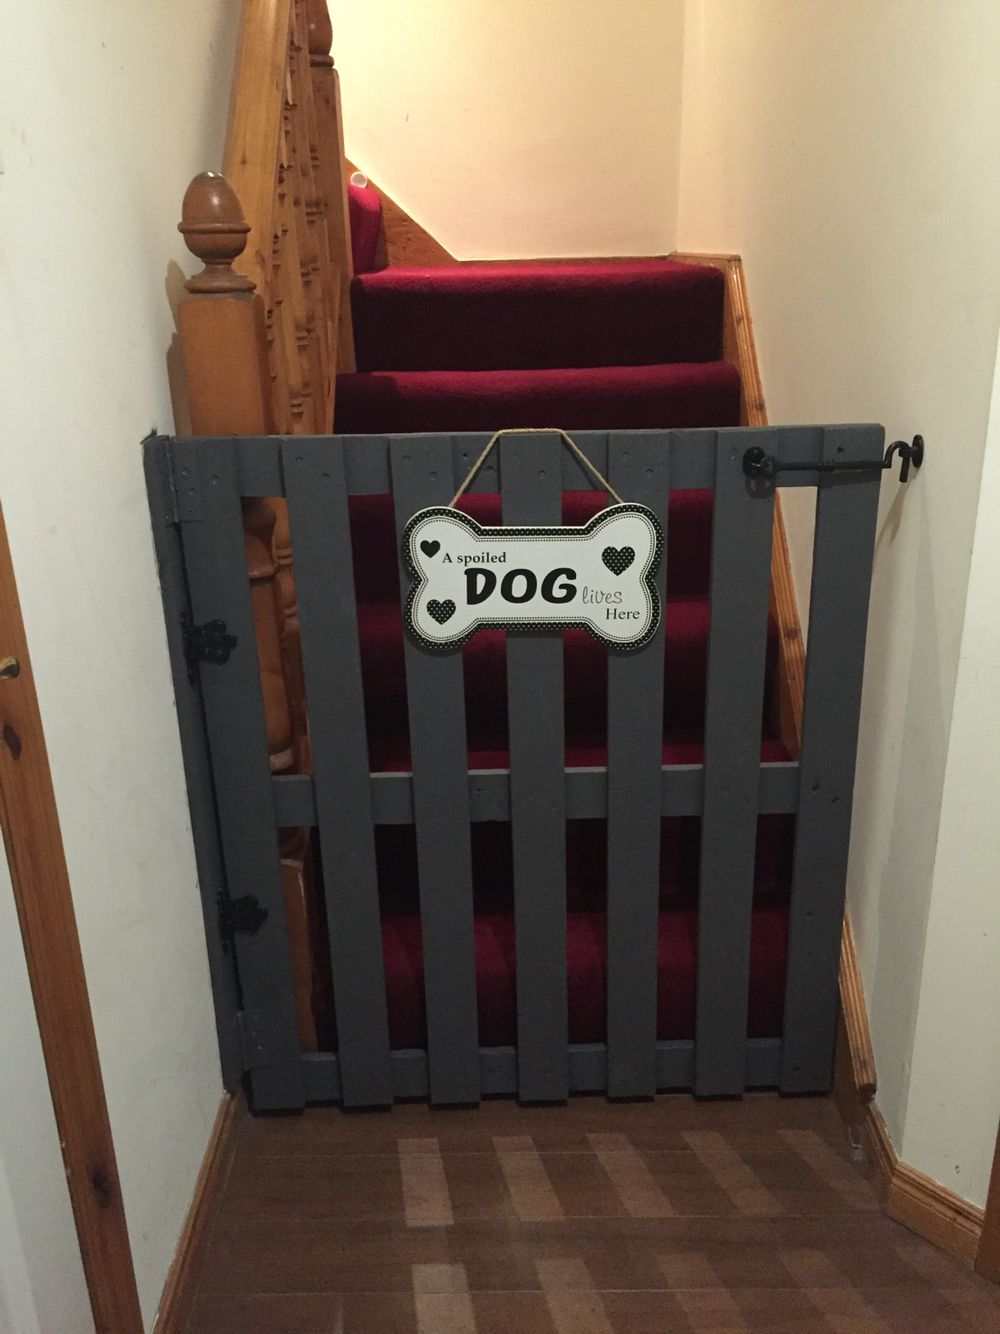 Hand Made Stair Gate From A Wooden Pallet... A Childu0027s Safety Gate Was Too  Low U0026 The Dogs Jumped It! Not This One Tho. : )